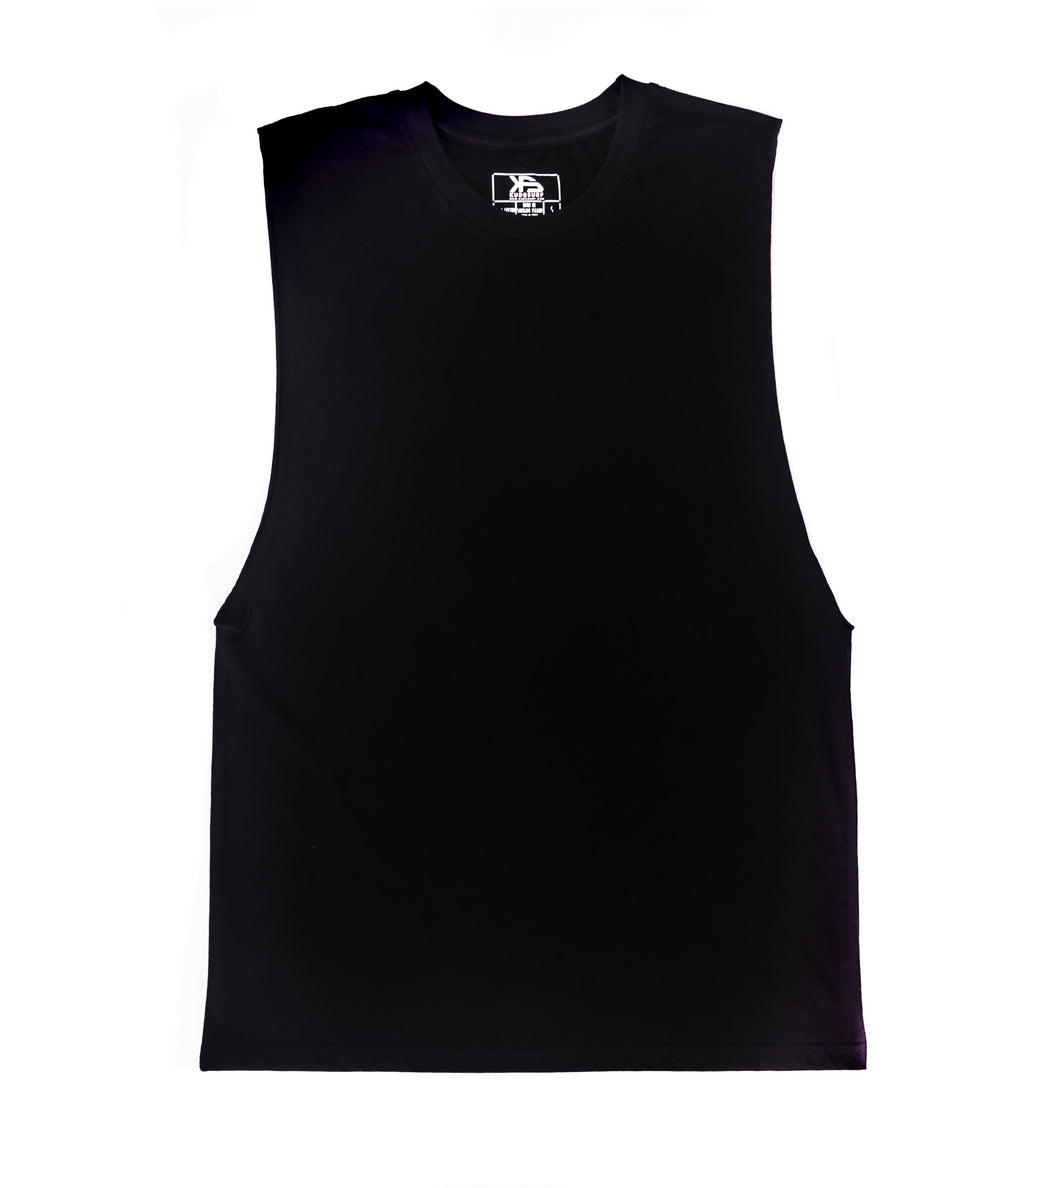 KS Jay Muscle Tee (Cotton Black)